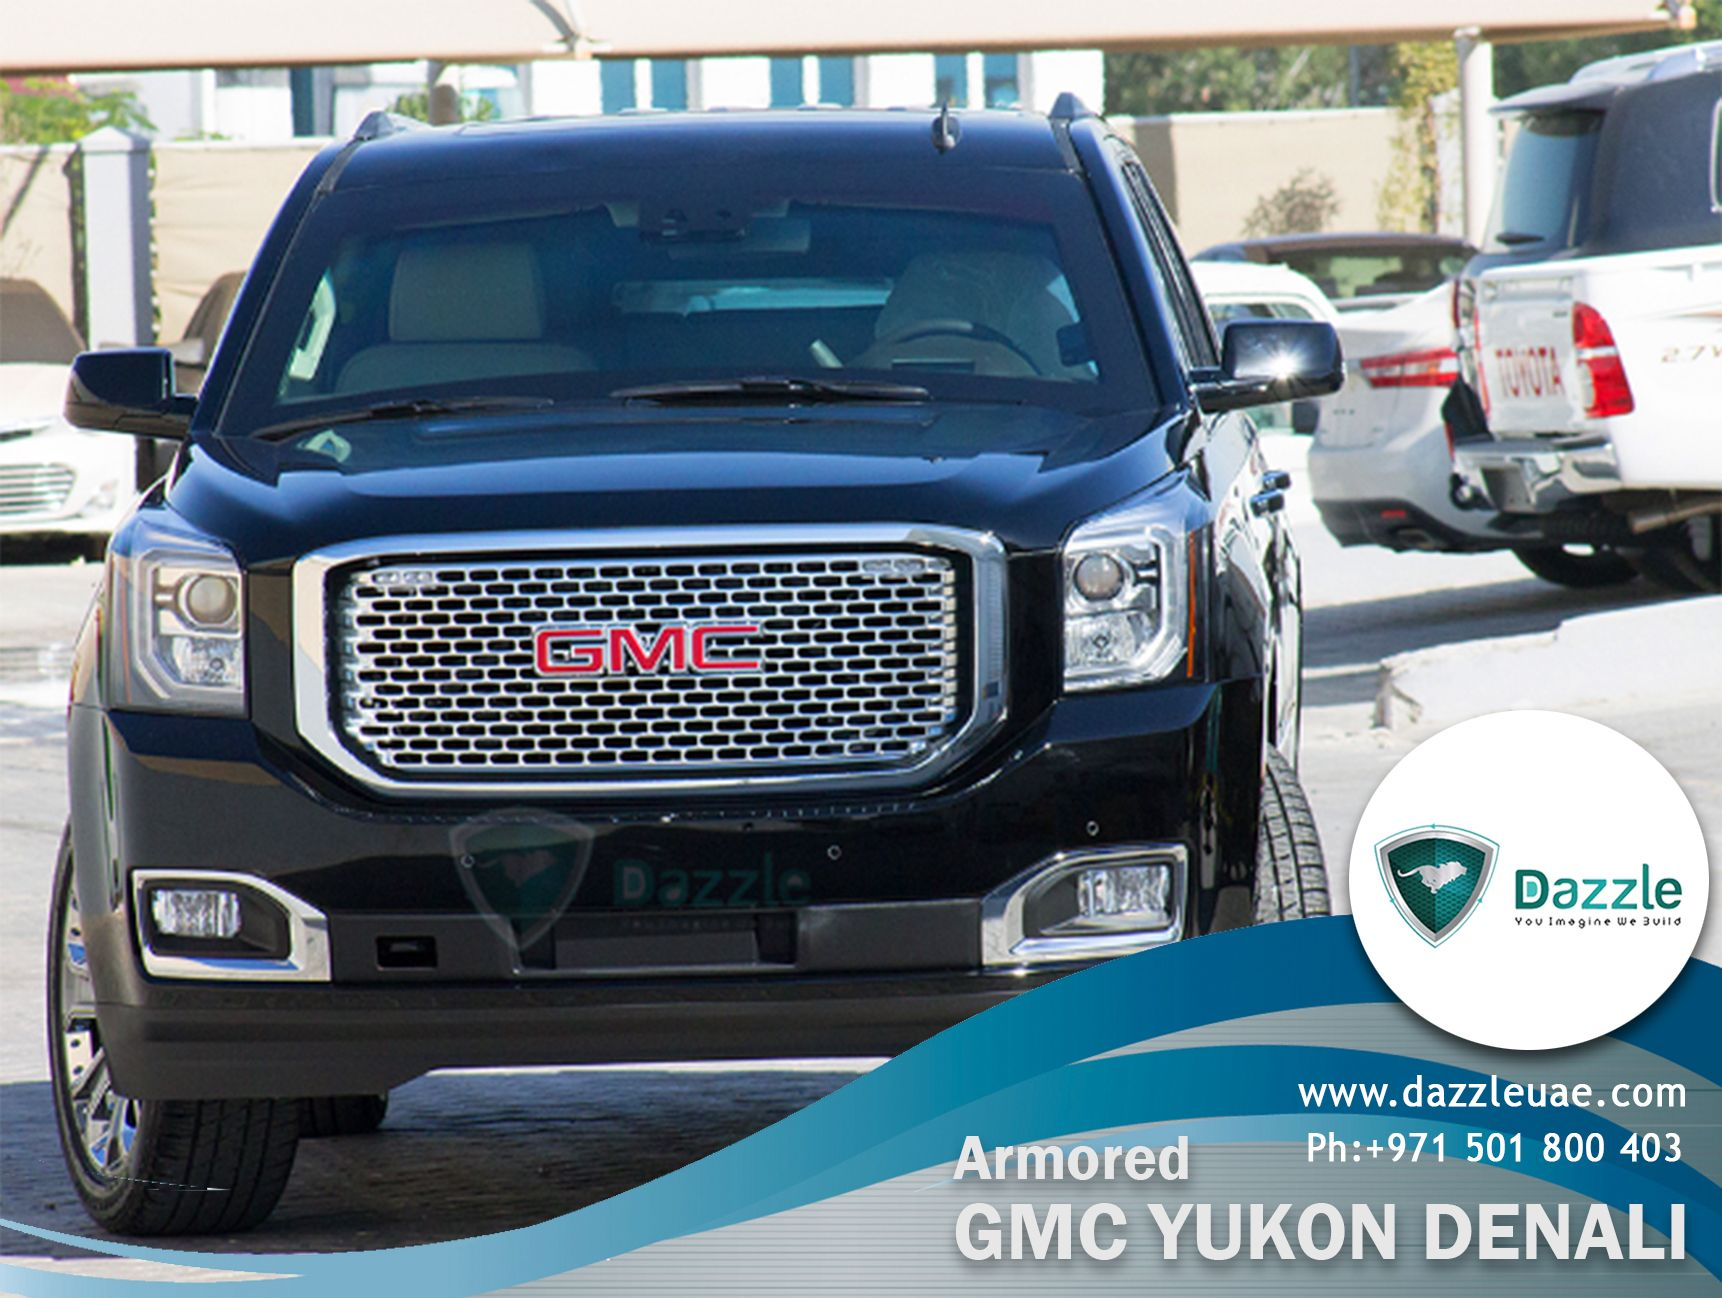 Dazzle Redesigned Armored Gmc Yukon Denali For Sale With Many